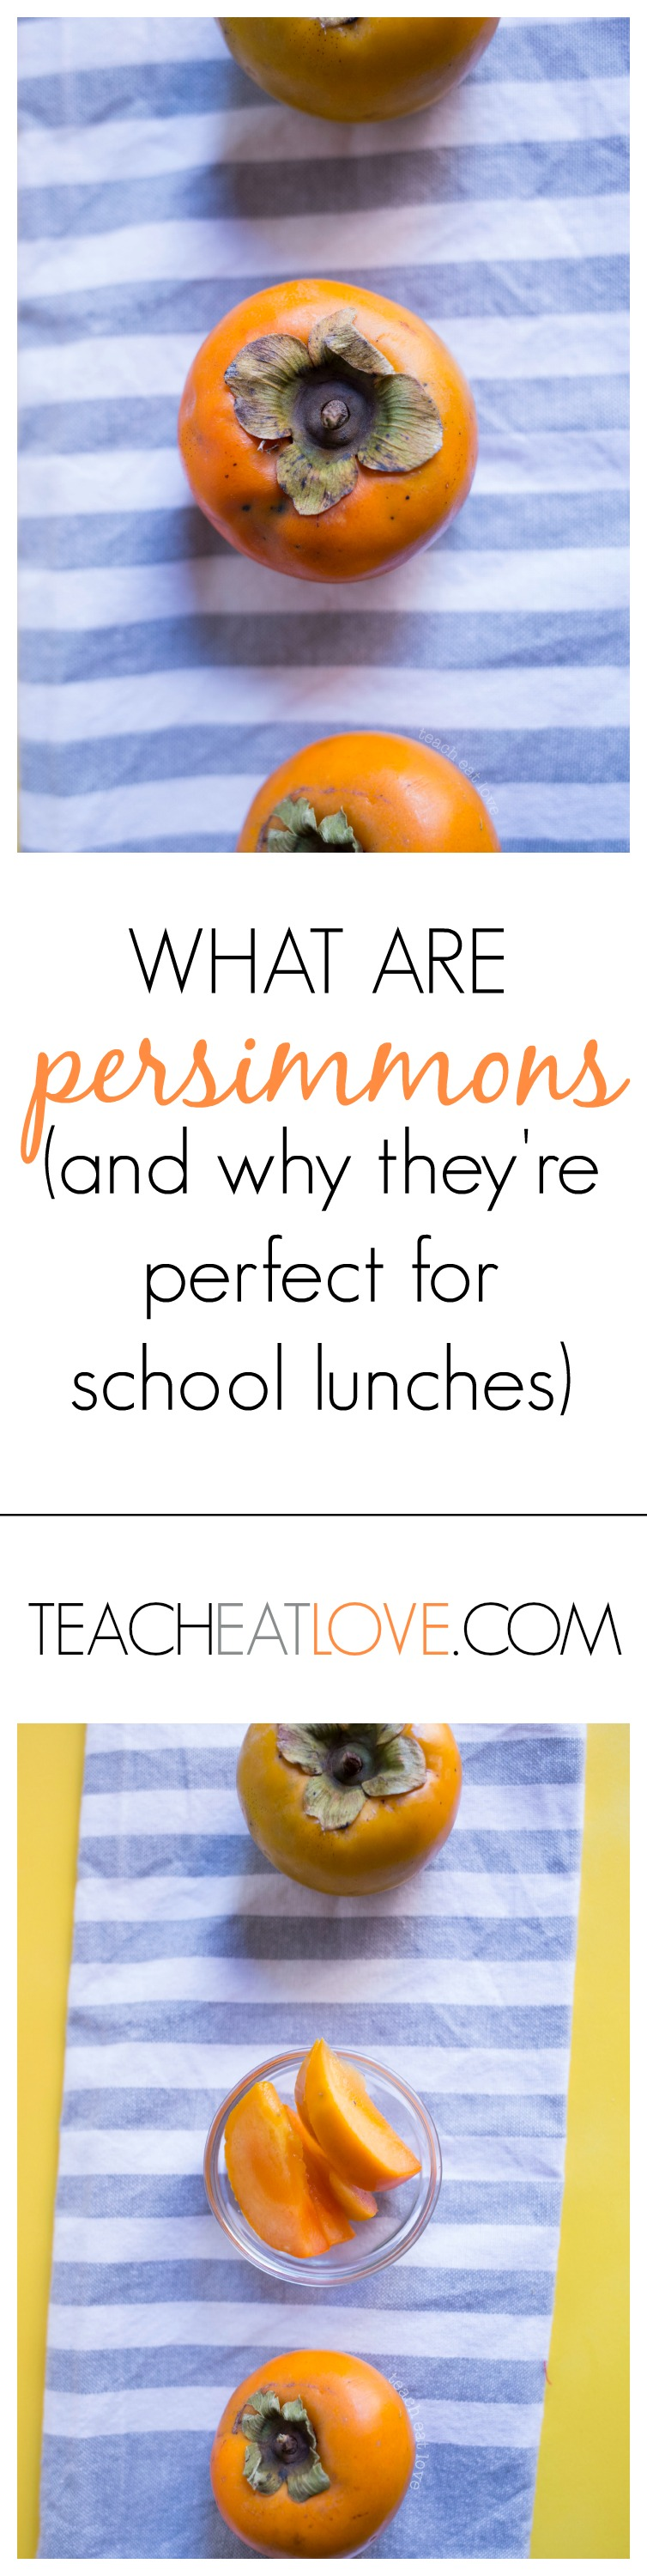 what are persimmons? www.teacheatlove.com